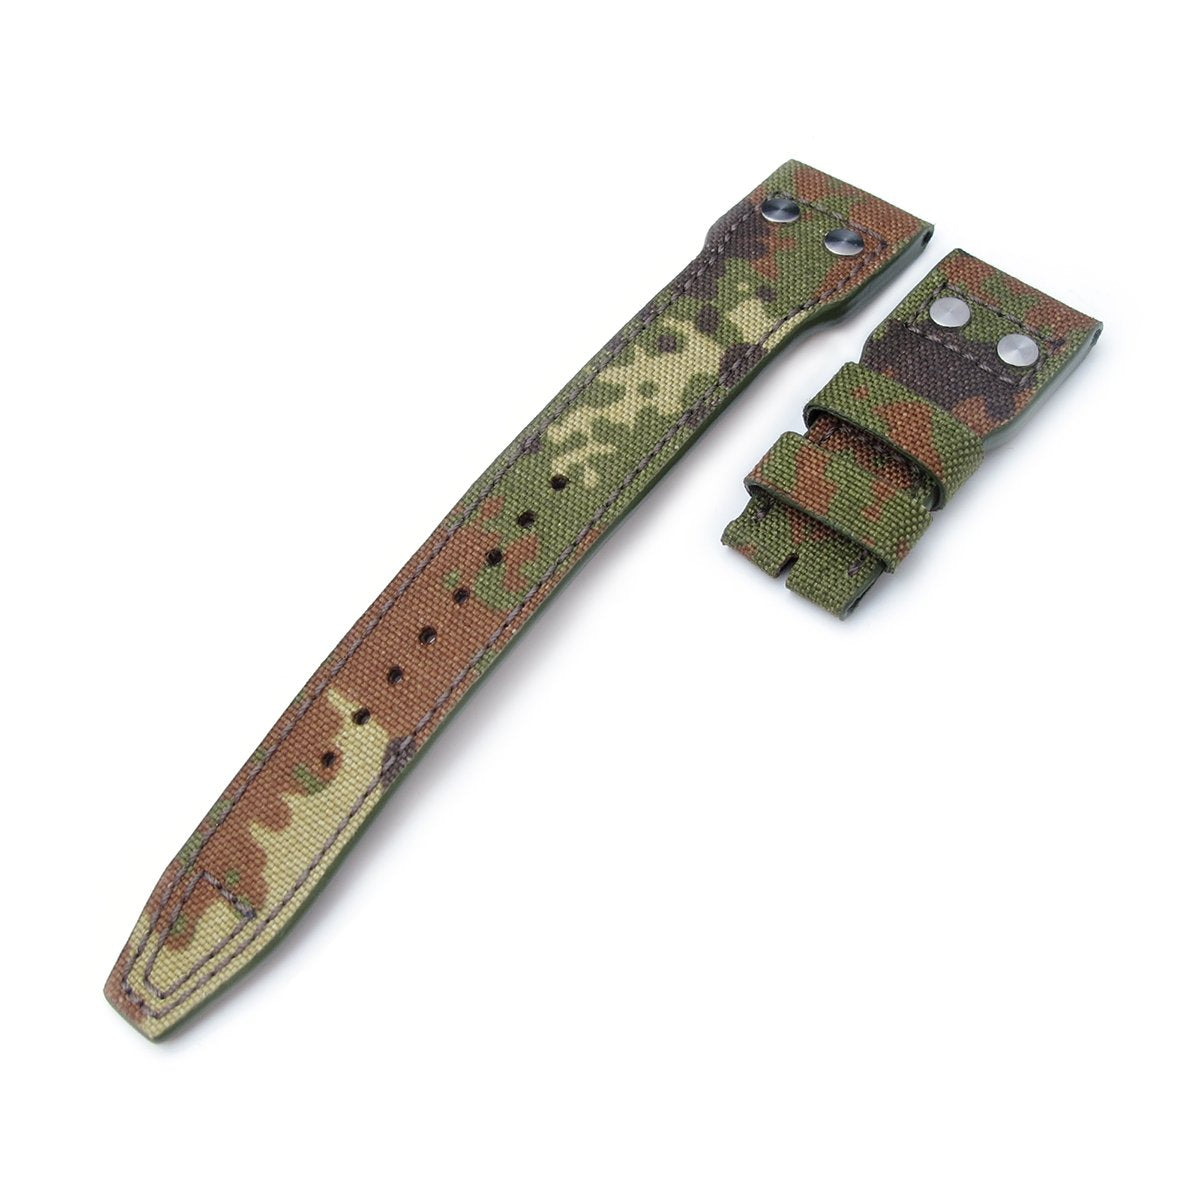 22mm MiLTAT Forest Camo Nylon IWC Big Pilot replacement Strap Rivet Lug Strapcode Watch Bands